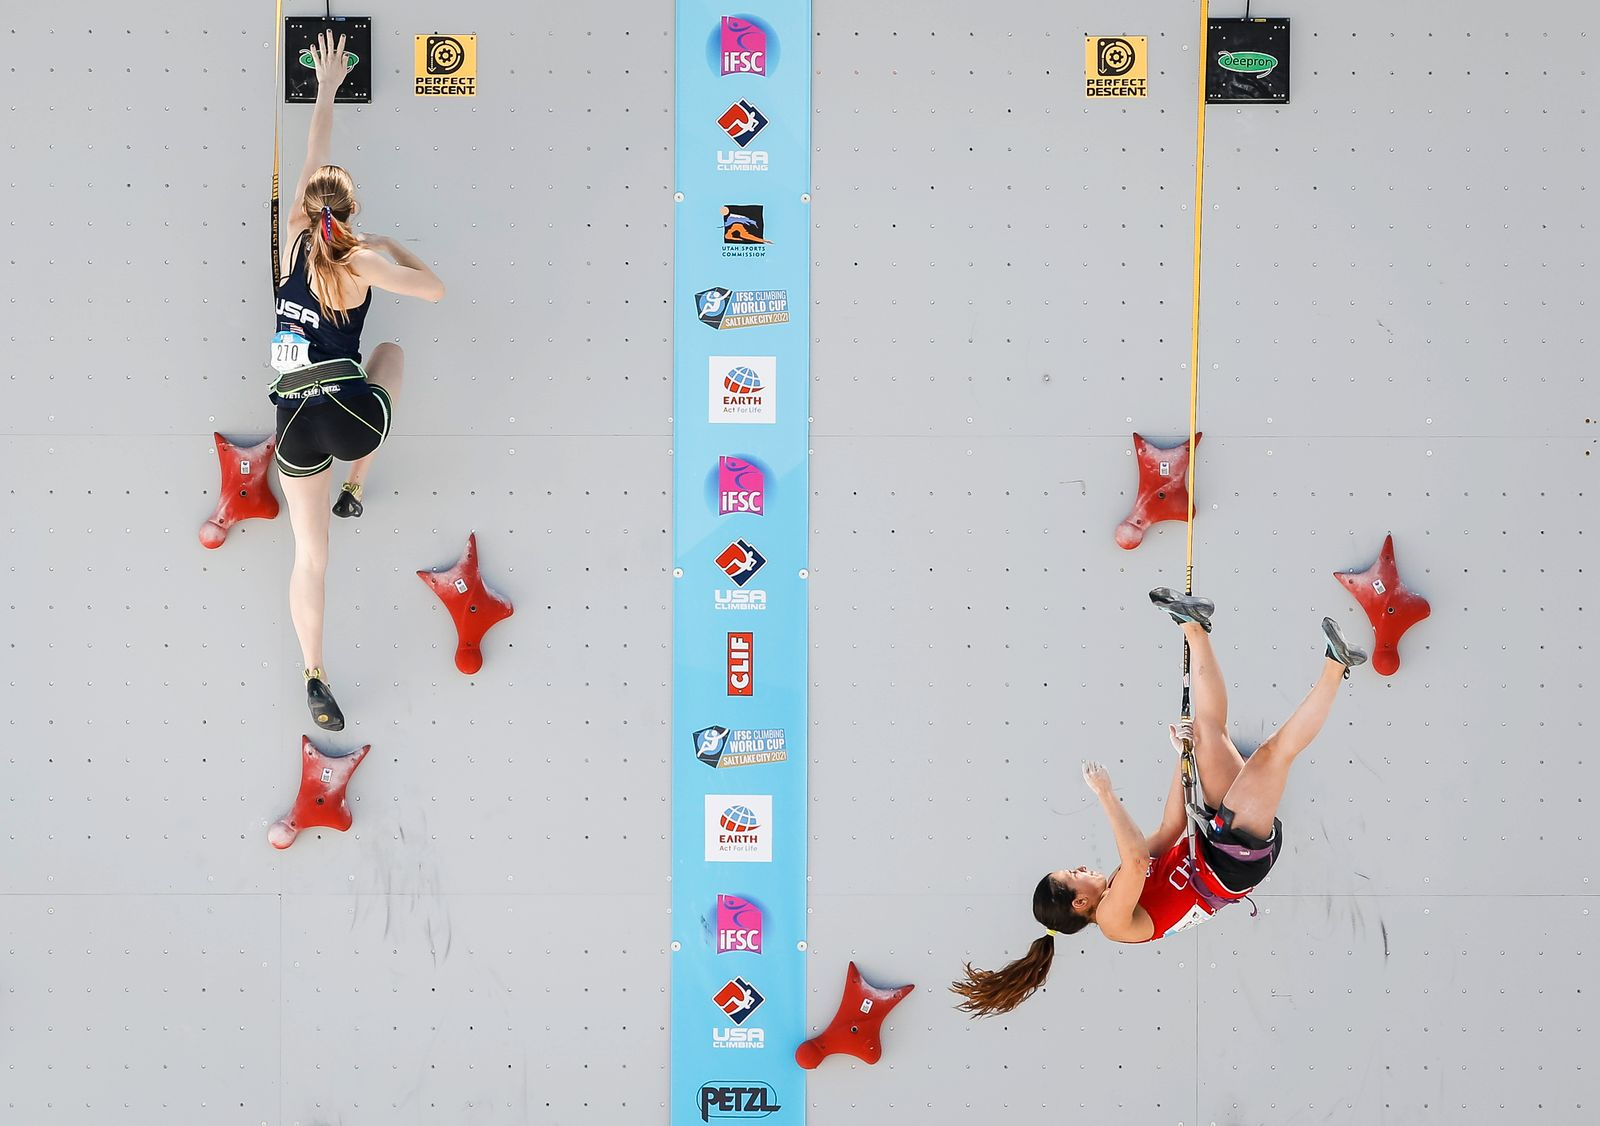 IFSC Climbing World Cup - Bouldering and Speed Climbing